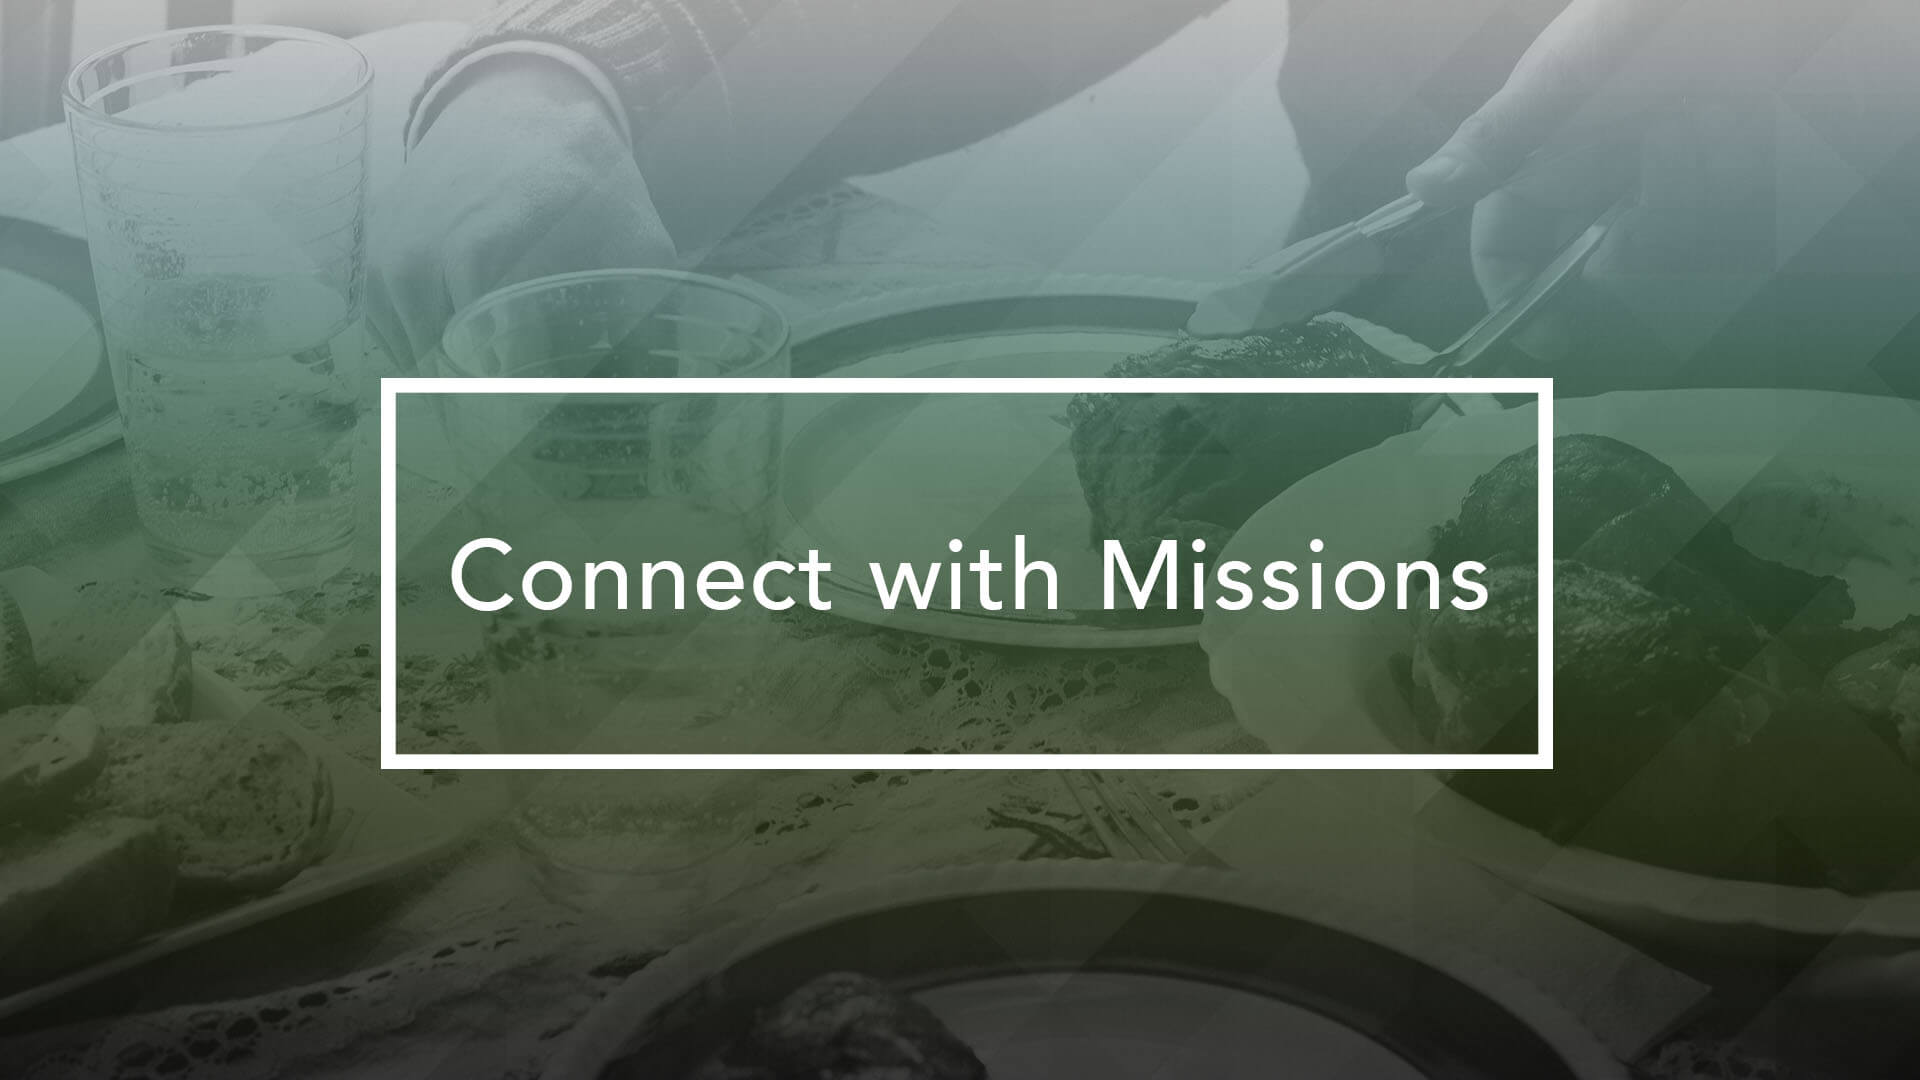 connectwithmissions